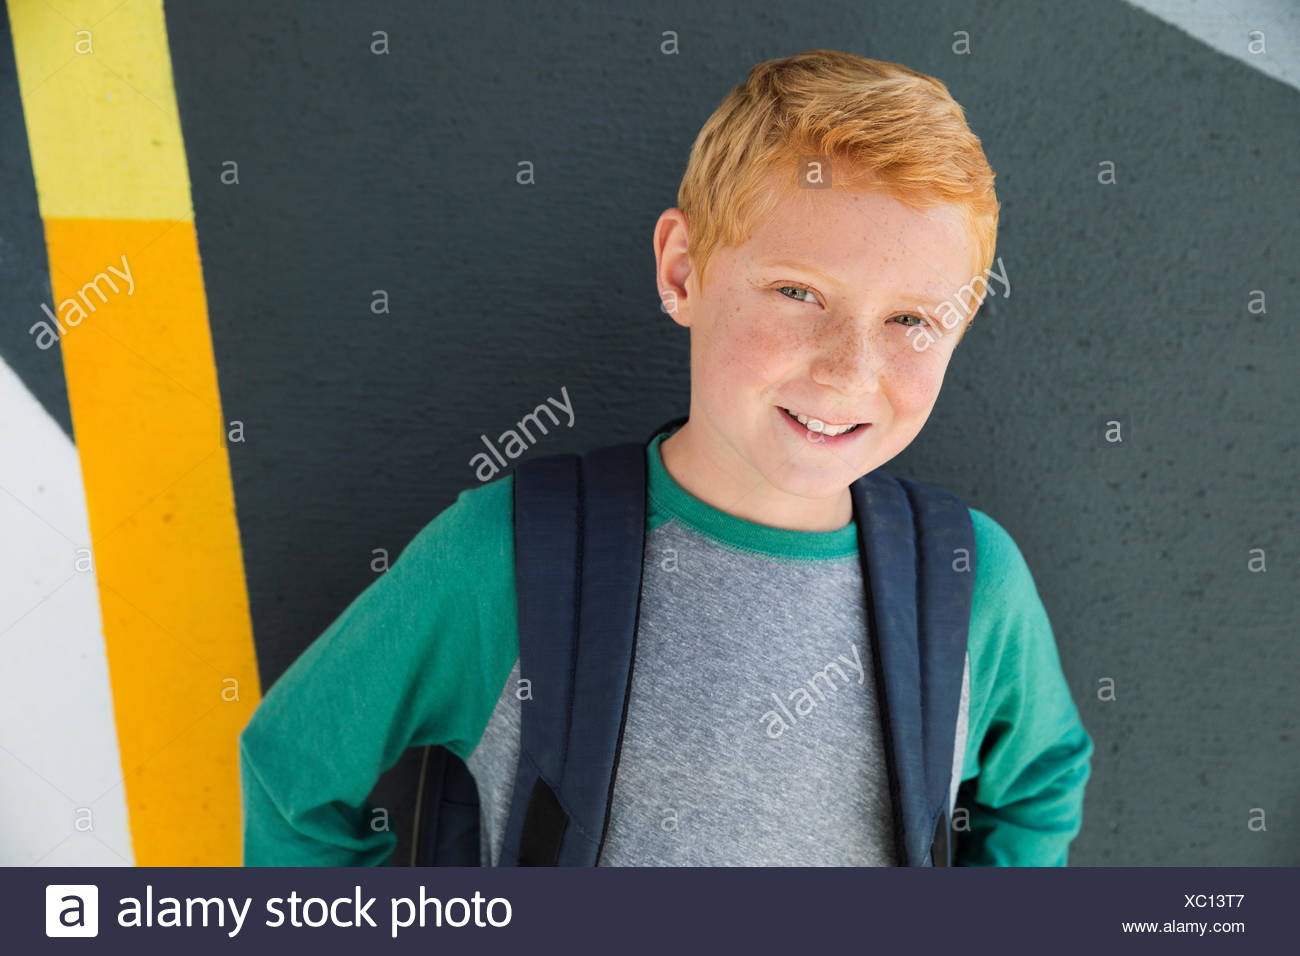 Portrait confident schoolboy with red hair - Stock Image